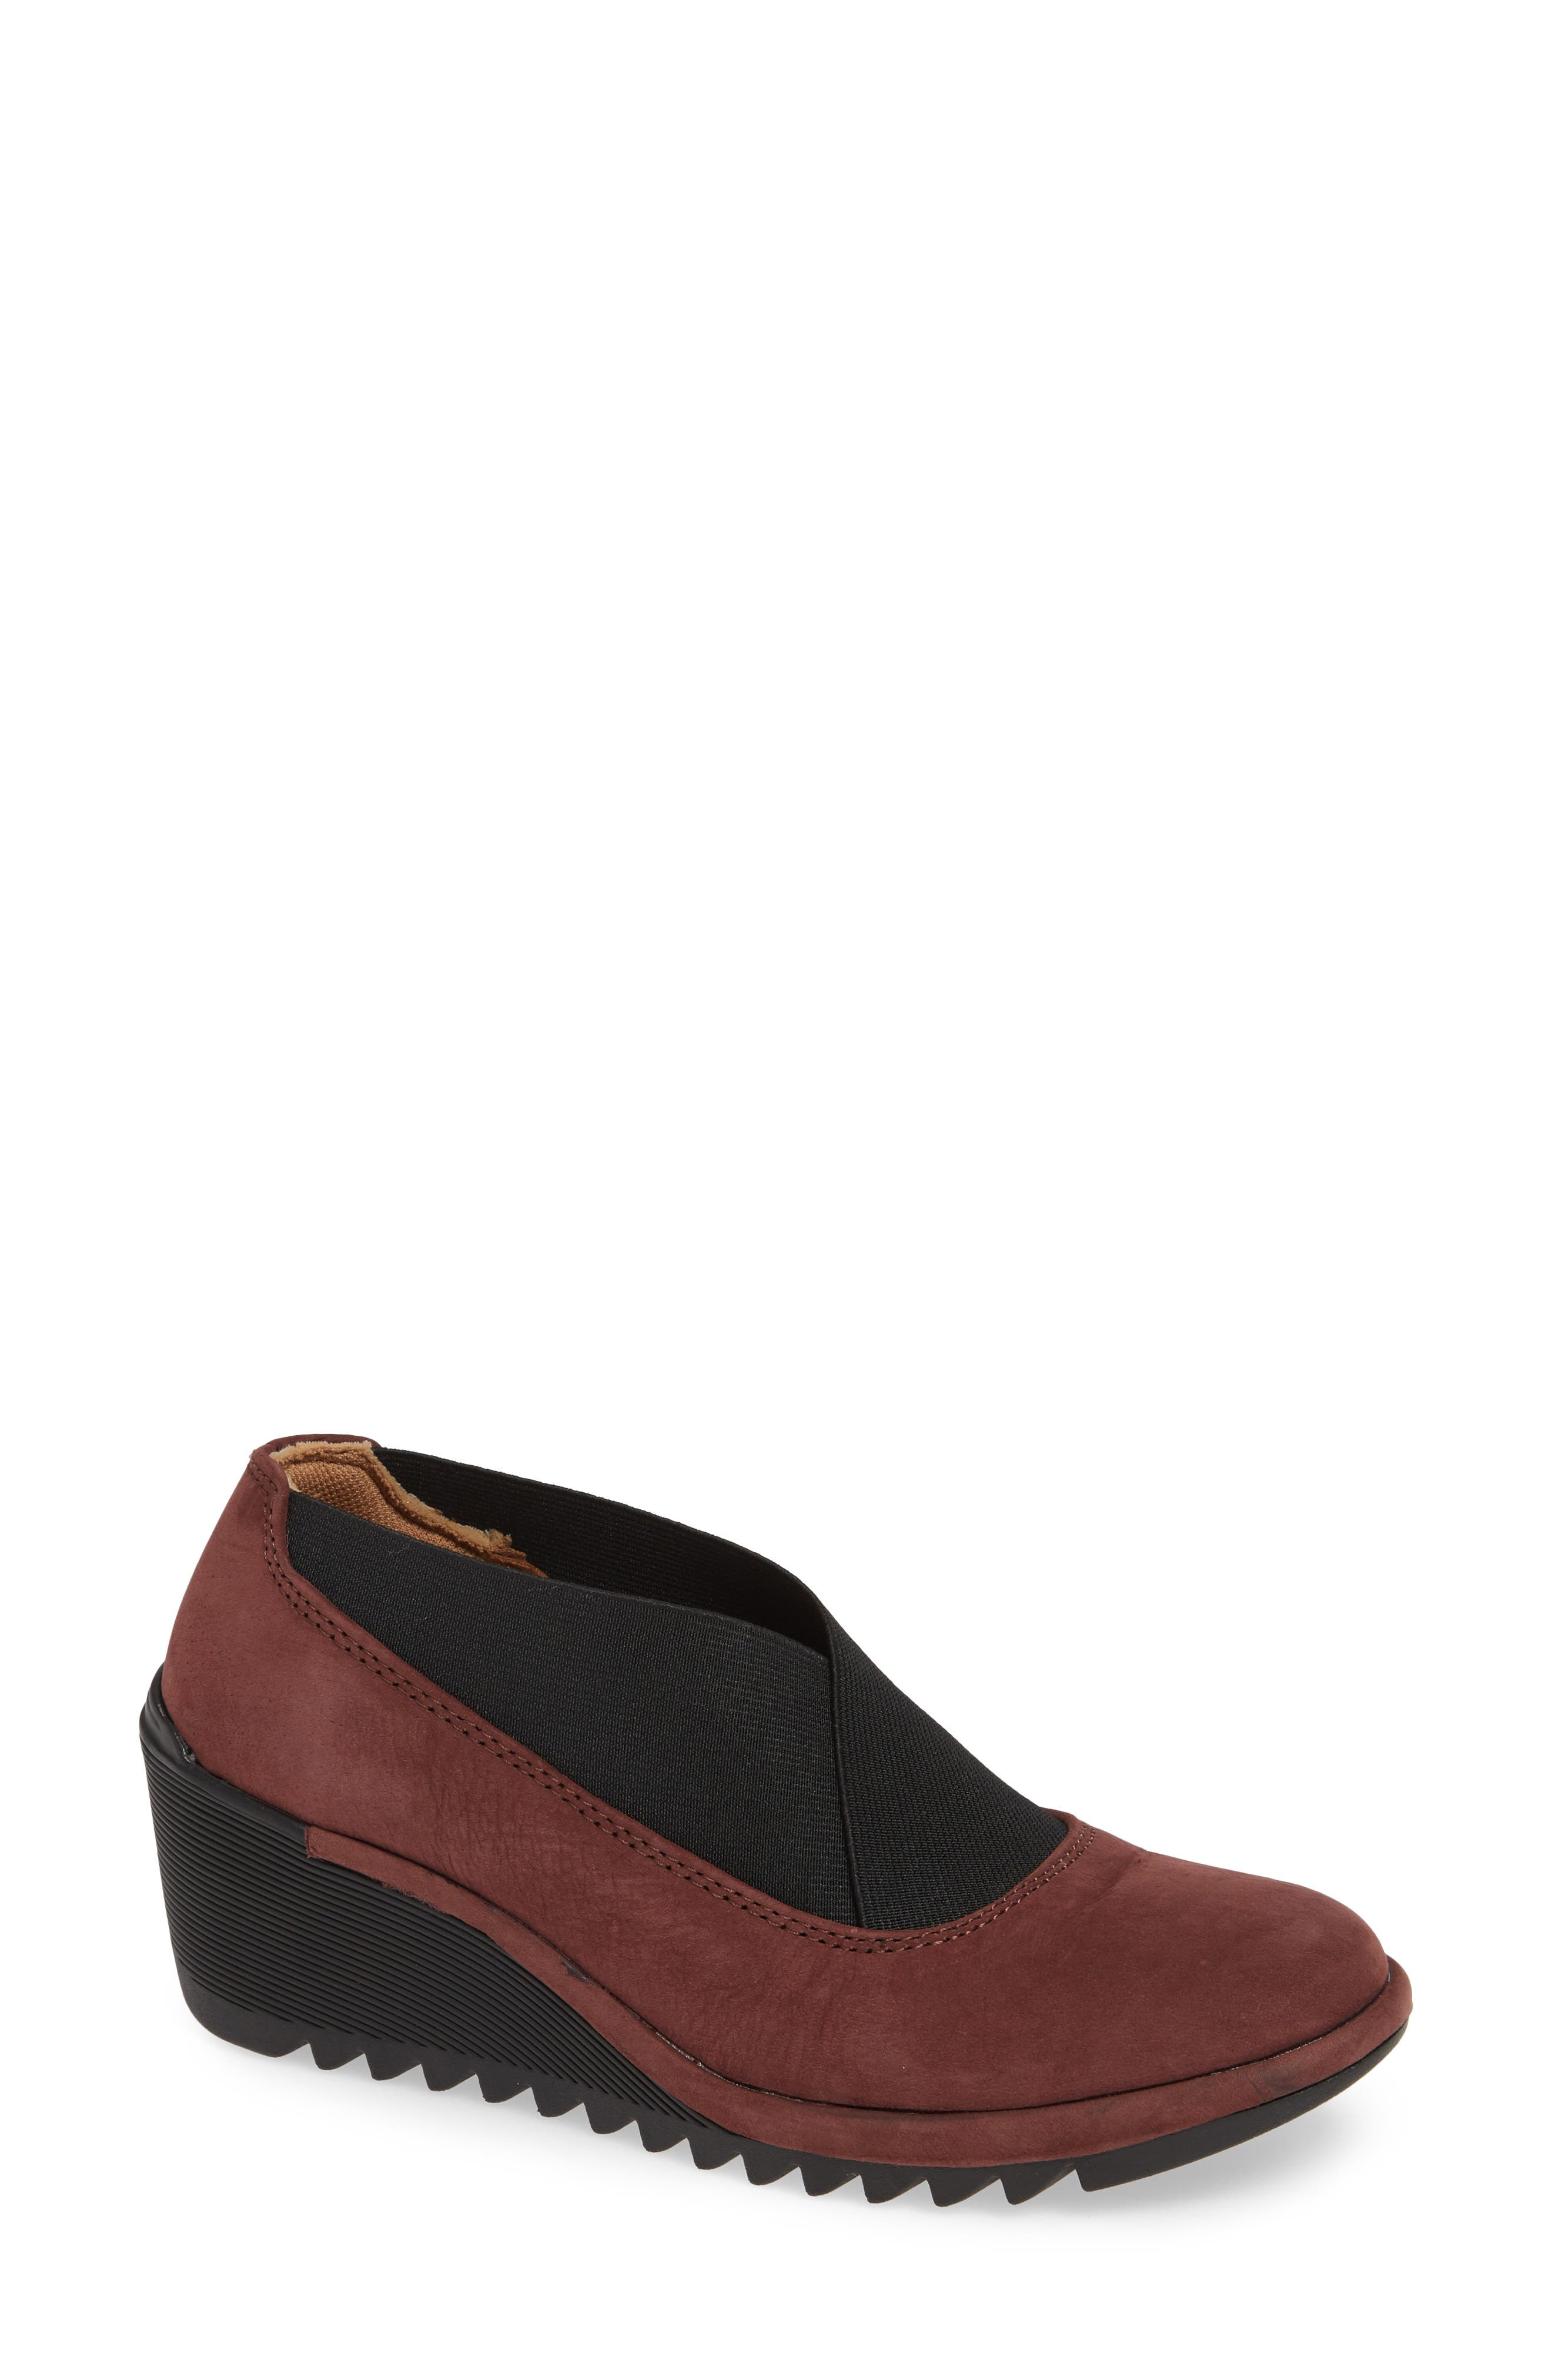 Comfortiva Ashford Ankle Bootie W - Brown